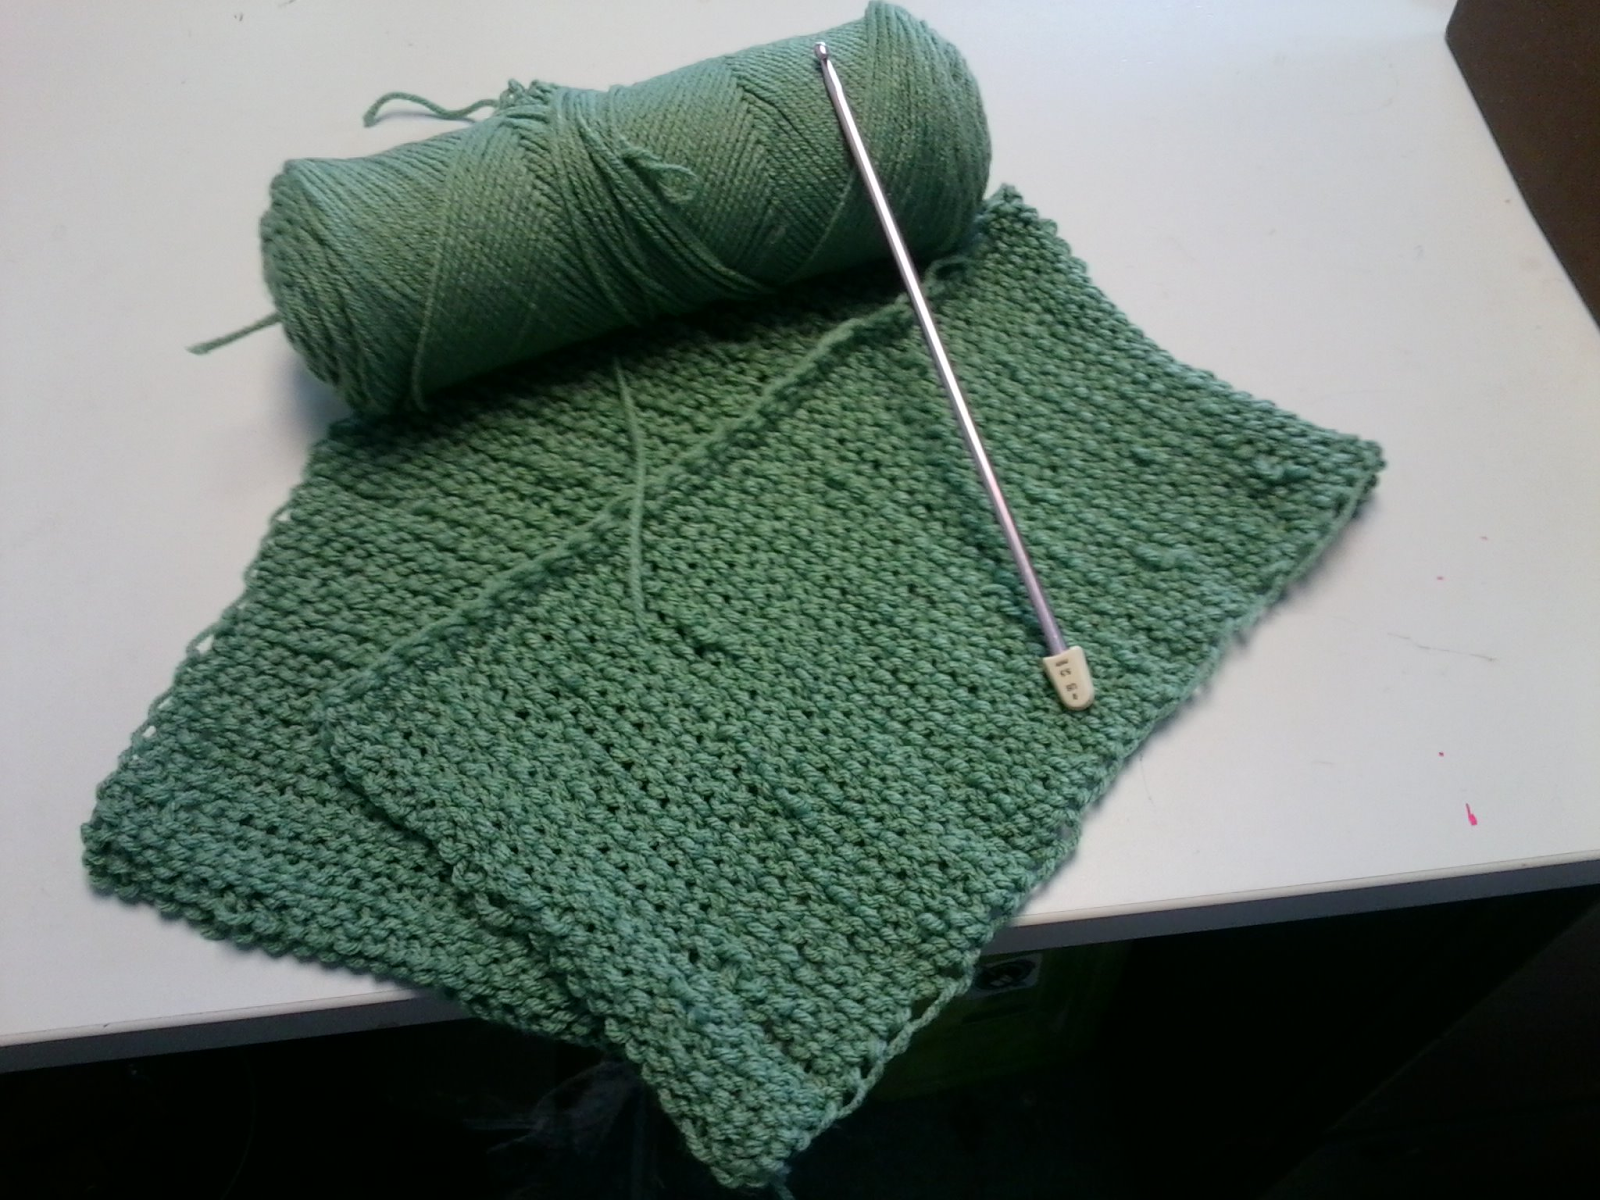 Crocheting Without A Hook : Crochet without a pattern